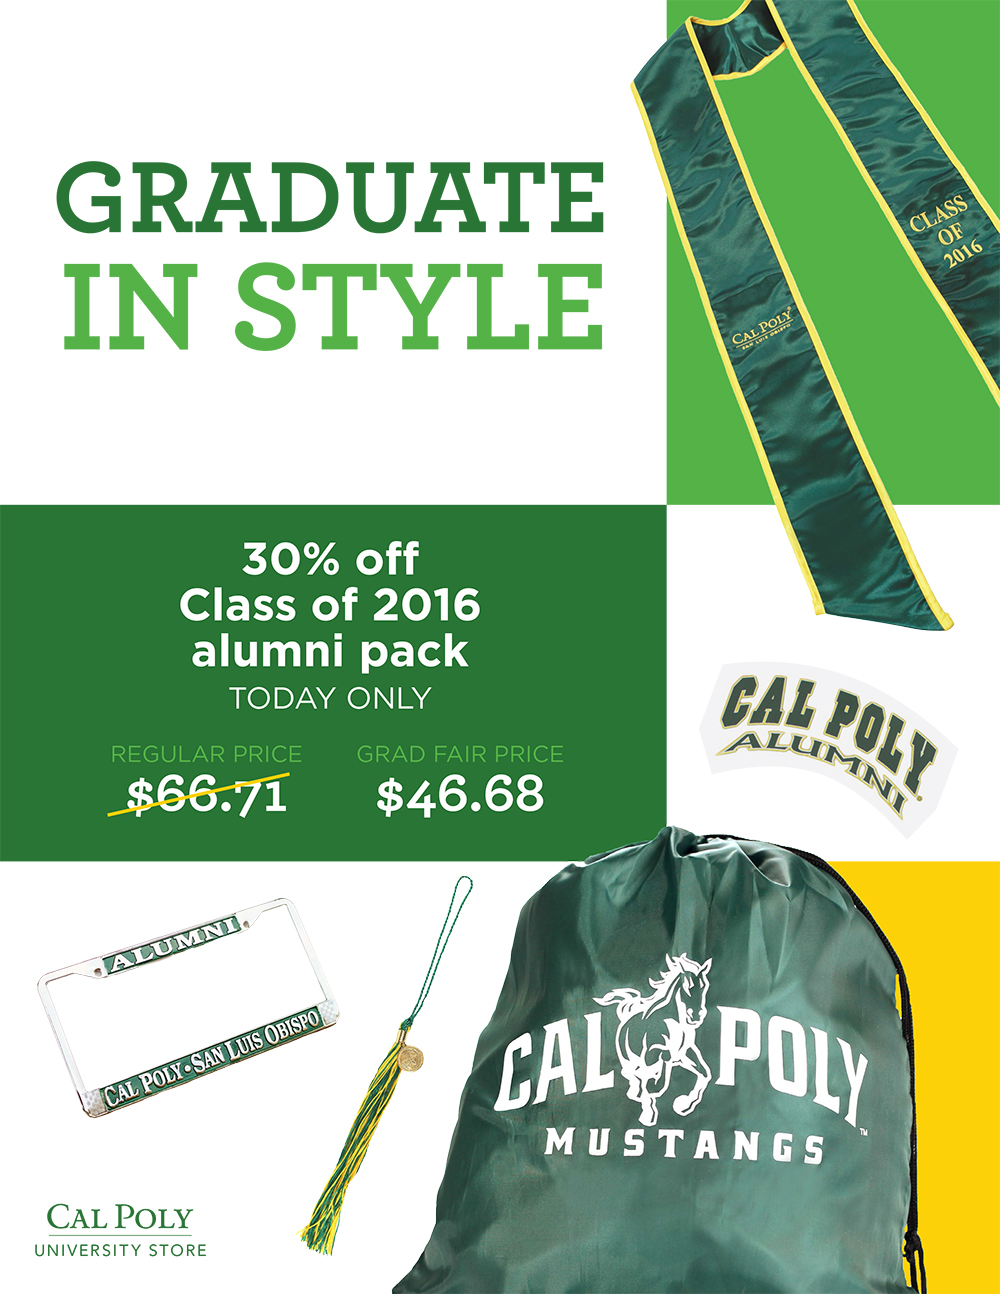 Cal Poly University Store